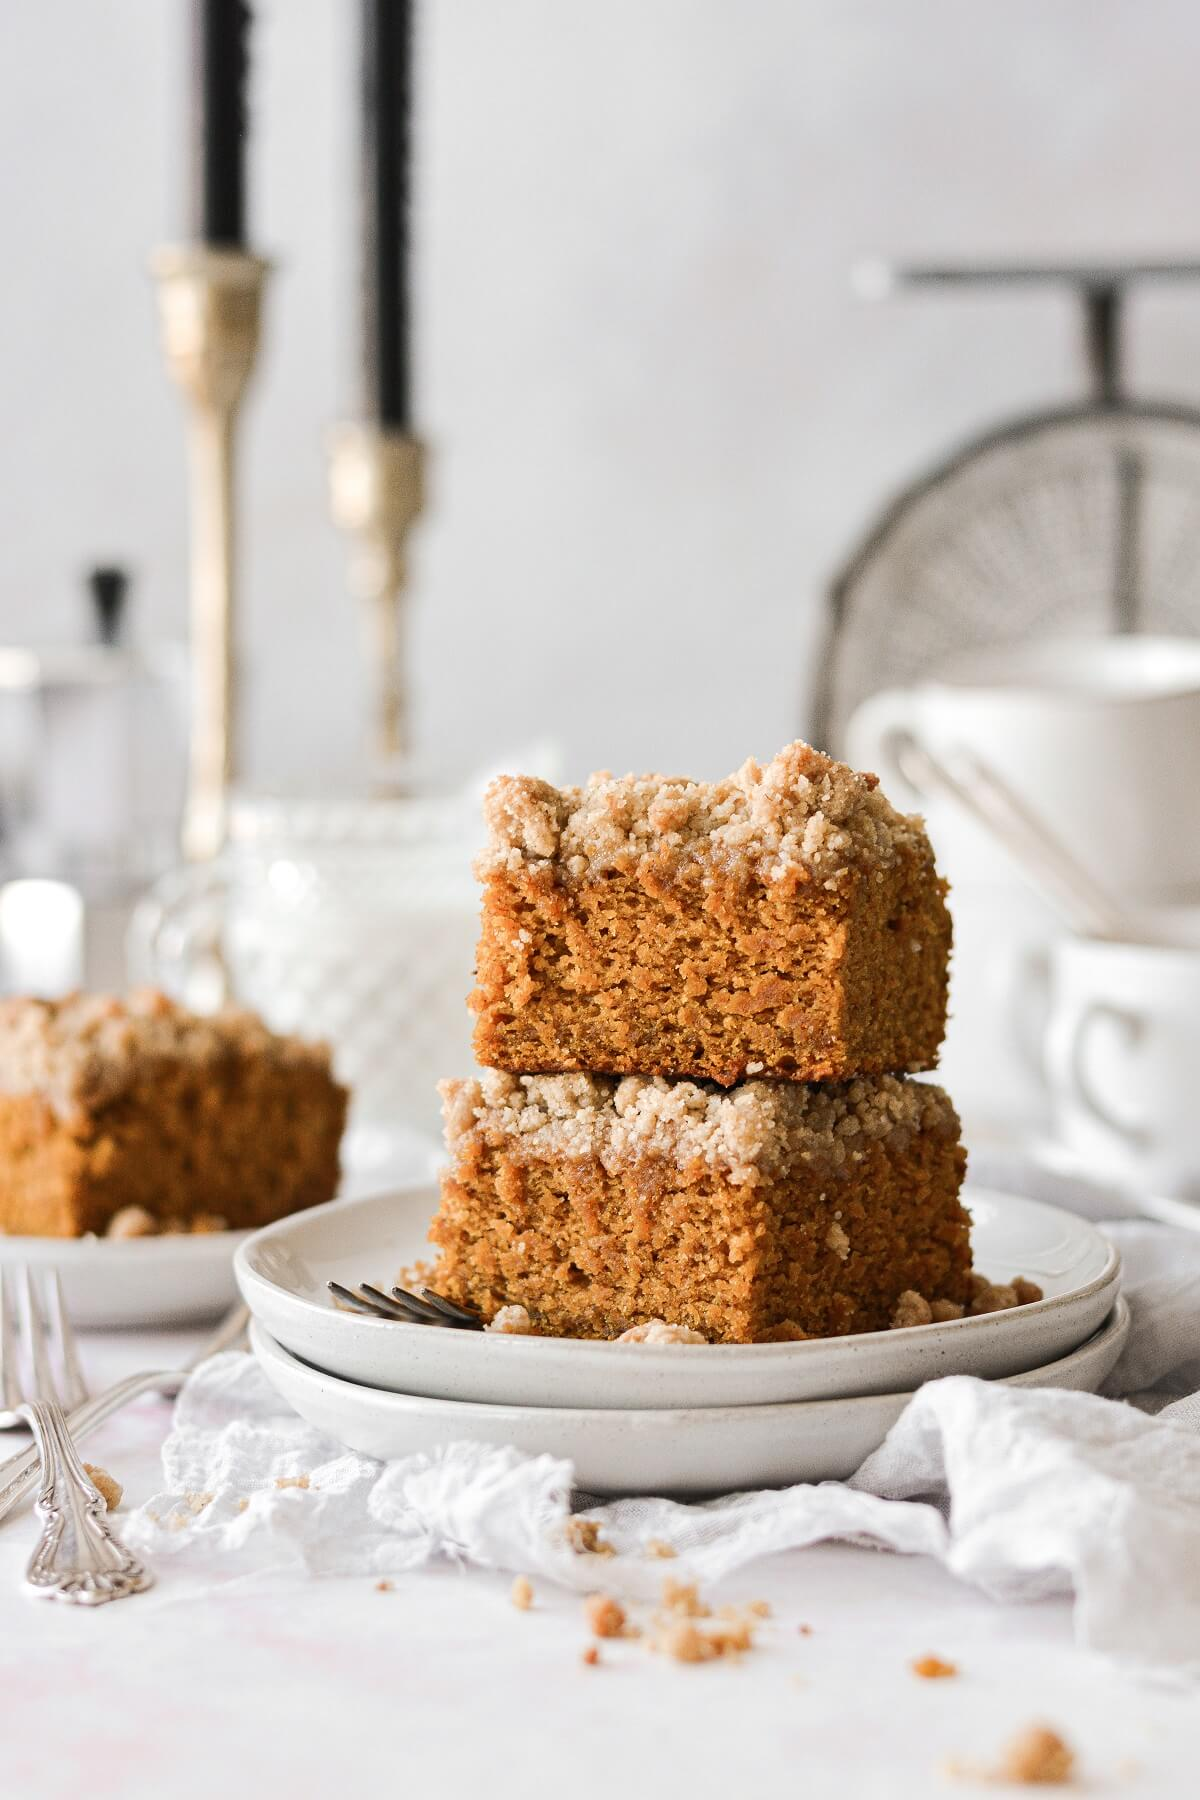 Pieces of pumpkin crumb coffee cake stacked on white plates.